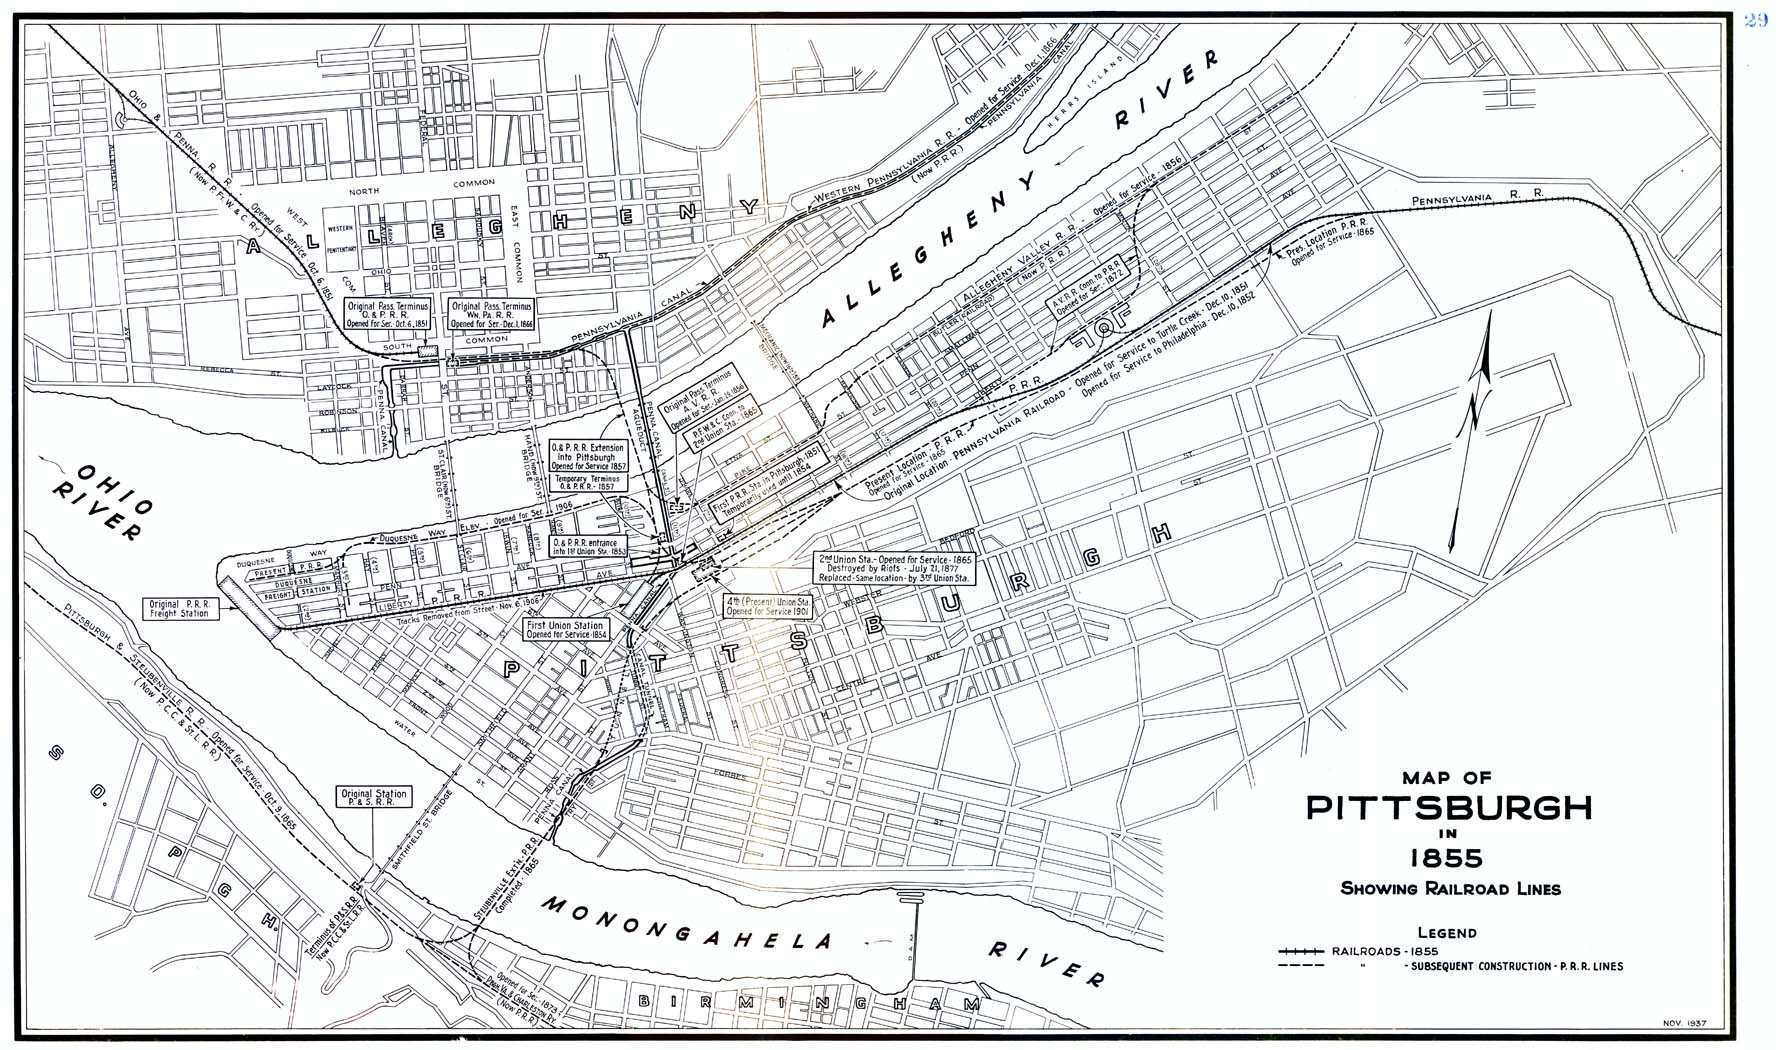 New Report Evaluates Hsr Routes Including Pgh S